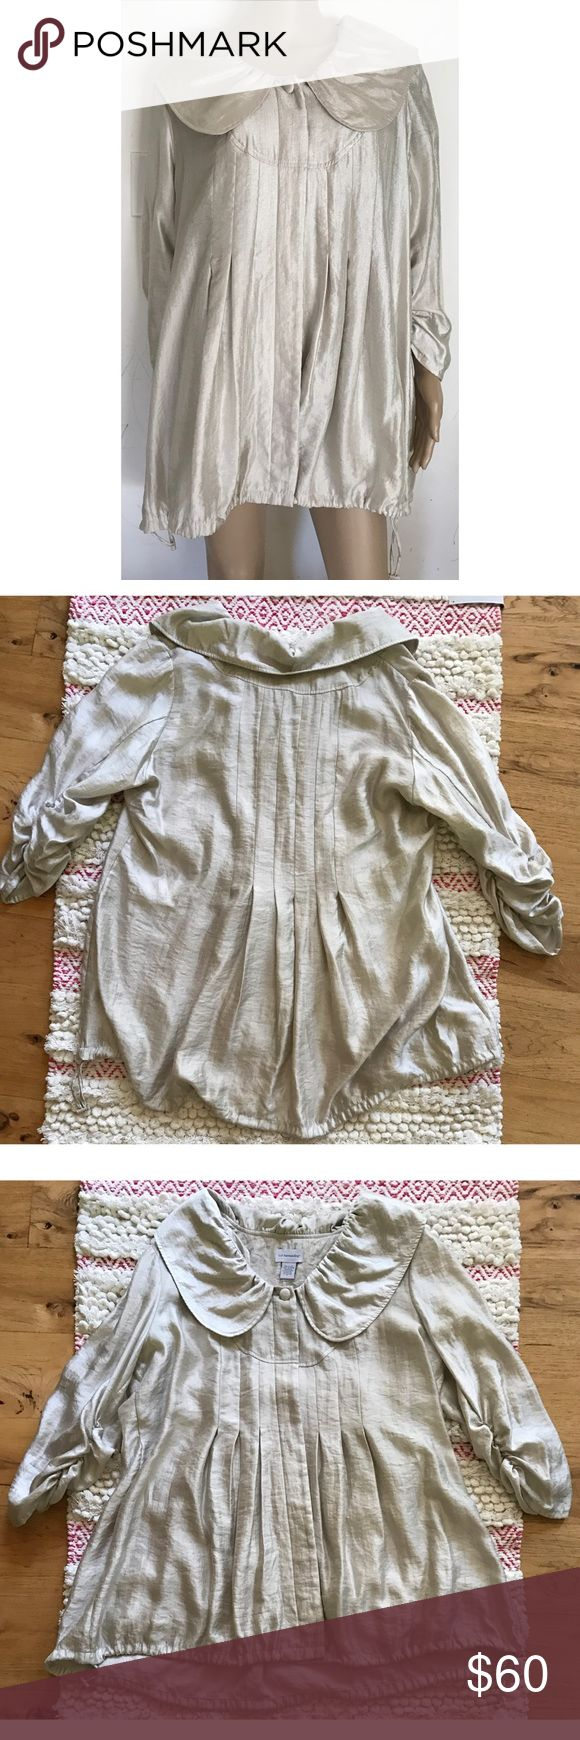 "Soft Surroundings Peter Pan Collar Utility Jacket In amazing condition and super gorgeous in person is this Soft Surroundings jacket in women's size 2X. No flaws. Not lined.  Shimmering metallic silver like color with large Peter Pan collar, hidden buttons, scrunch sleeves, and adjustable drawstrings on the bottom to tighten jacket up. 52% rayon/ 48% nylon.   Measure about 30"" length, 24"" pit to pit, 20"" sleeves, 18"" shoulder to shoulder. ❌No trades or modeling. Always open to reasonable…"